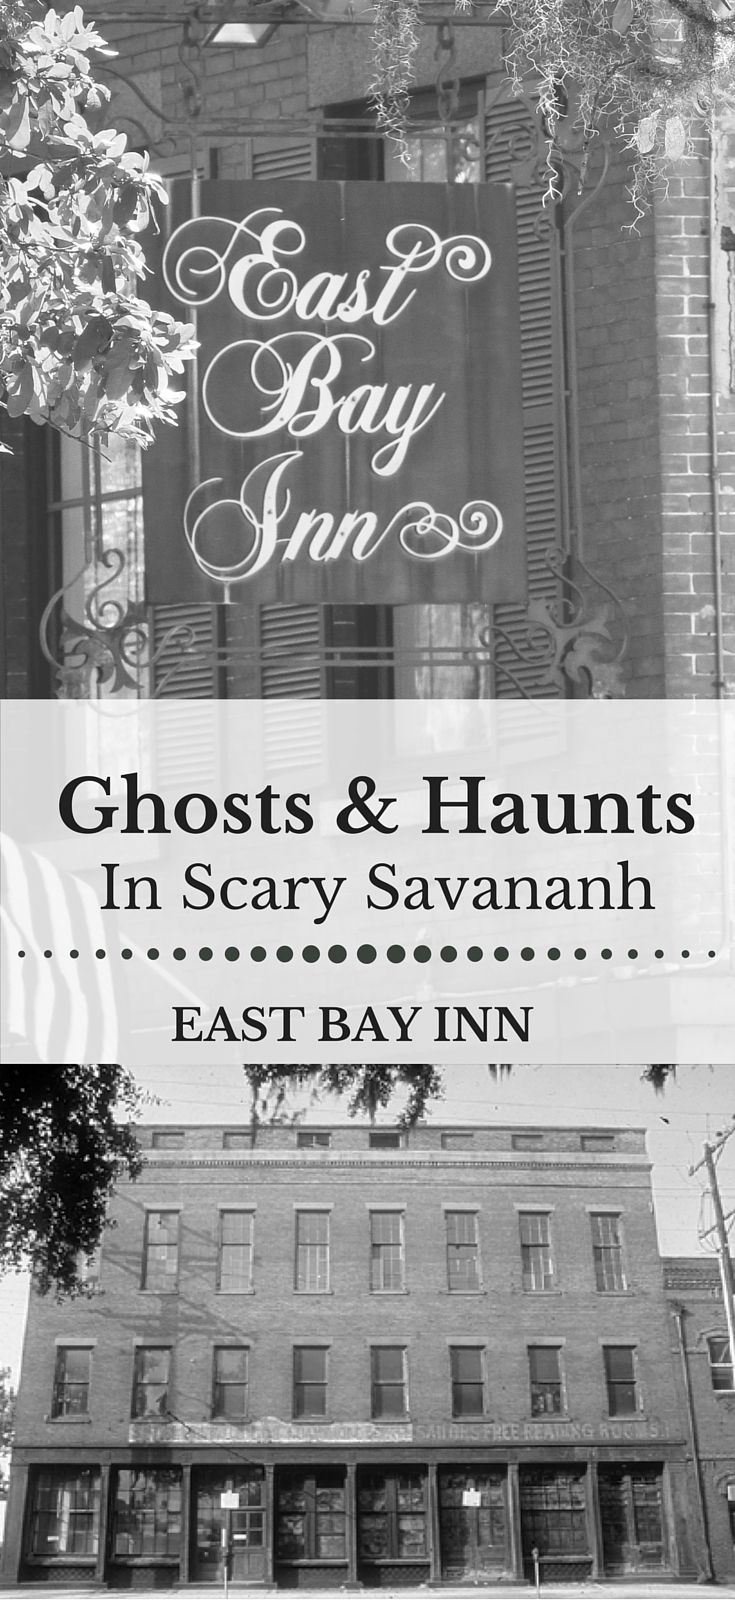 """Haunted Savannah Hotels - Part of the quirky and spectacular fun of Savannah is its reputation as a haunted city. East Bay Inn, was built in 1852, just steps away from the dark waters of the Savannah River. The Inn has its own place in the city's spooky folklore, thanks to our """"ghost,"""" who has been affectionately named """"Charlie"""" by our staff."""